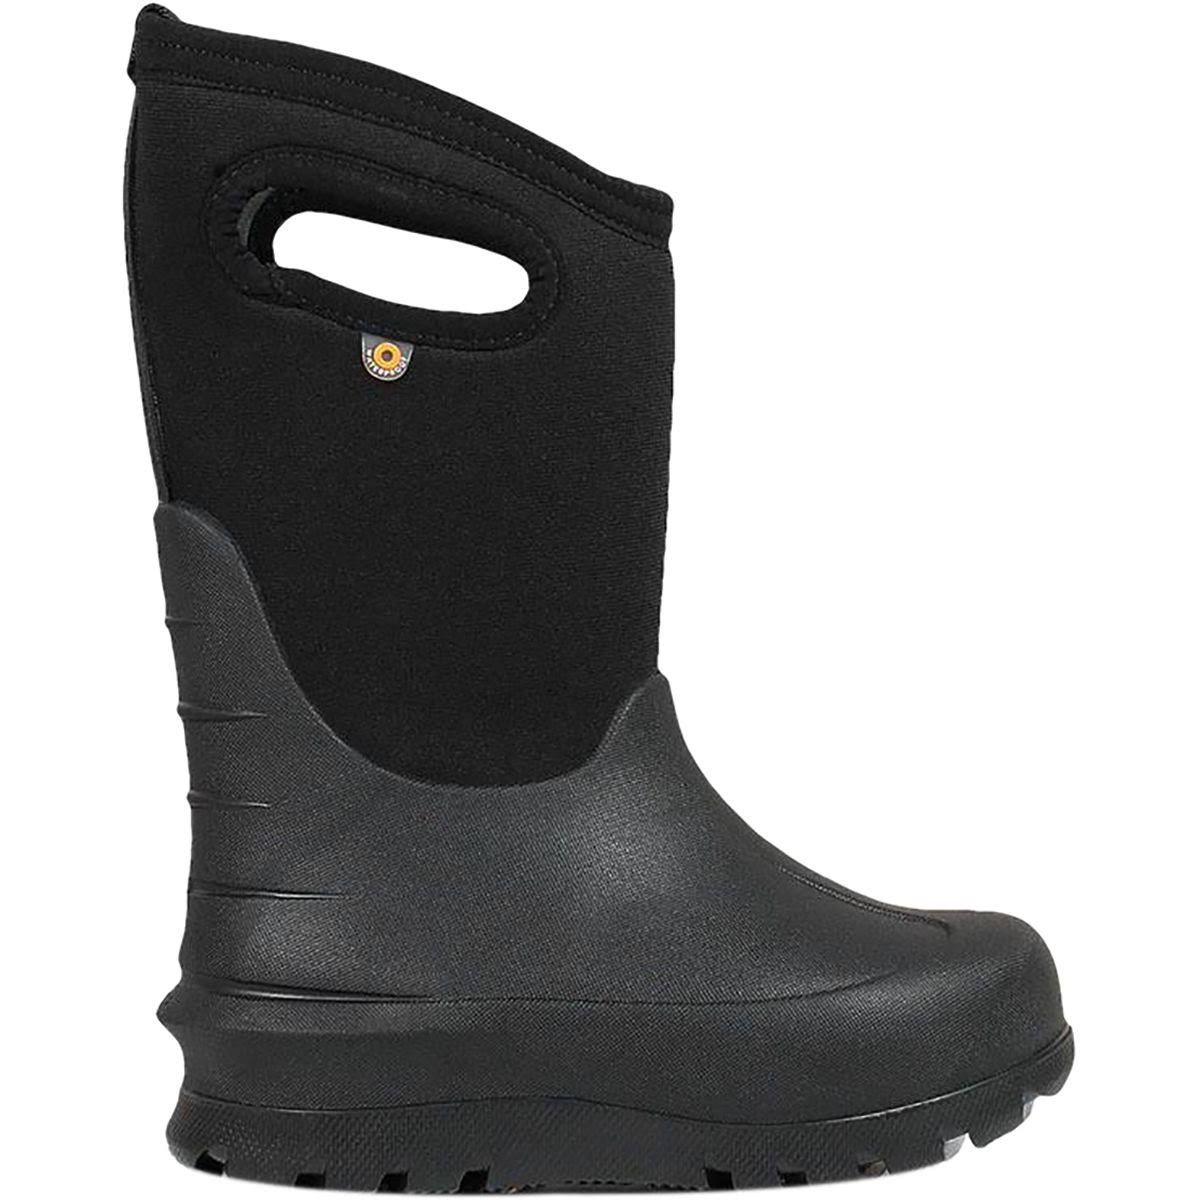 Bogs Neo-Classic Insulated Boots Black 13 Kids